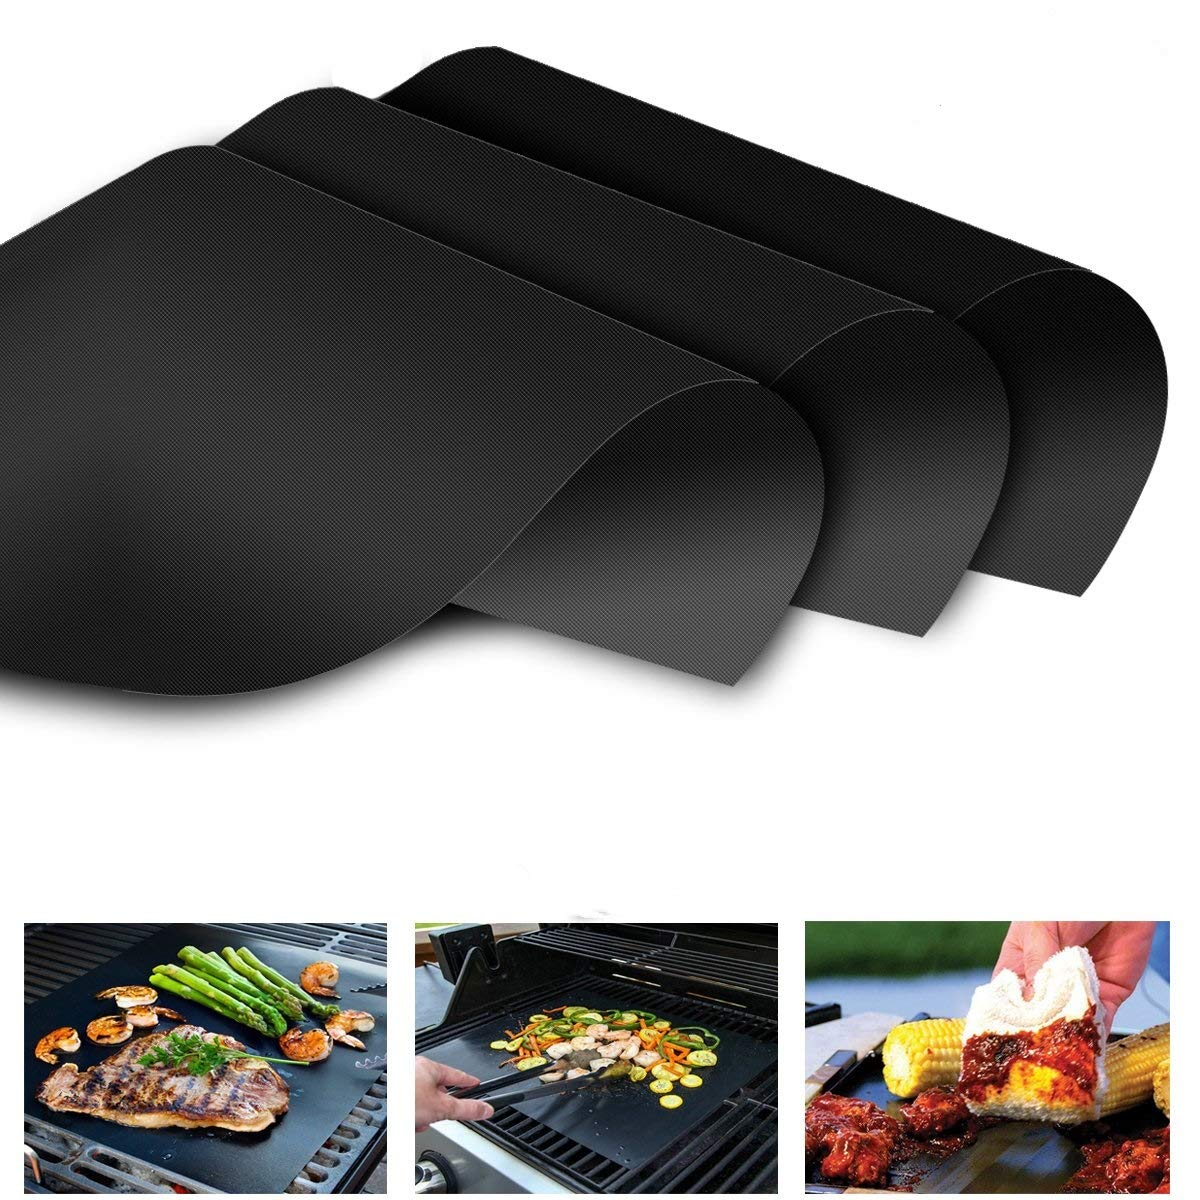 Outdoor Cooking Tools,BBQ Grill Mat Heat Resistant Grilling Accessories Non-Stick Barbecue Baking Mats with FDA Approved,Reusable and Easy to Clean for Gas,Charcoal,Electric Grill (3)